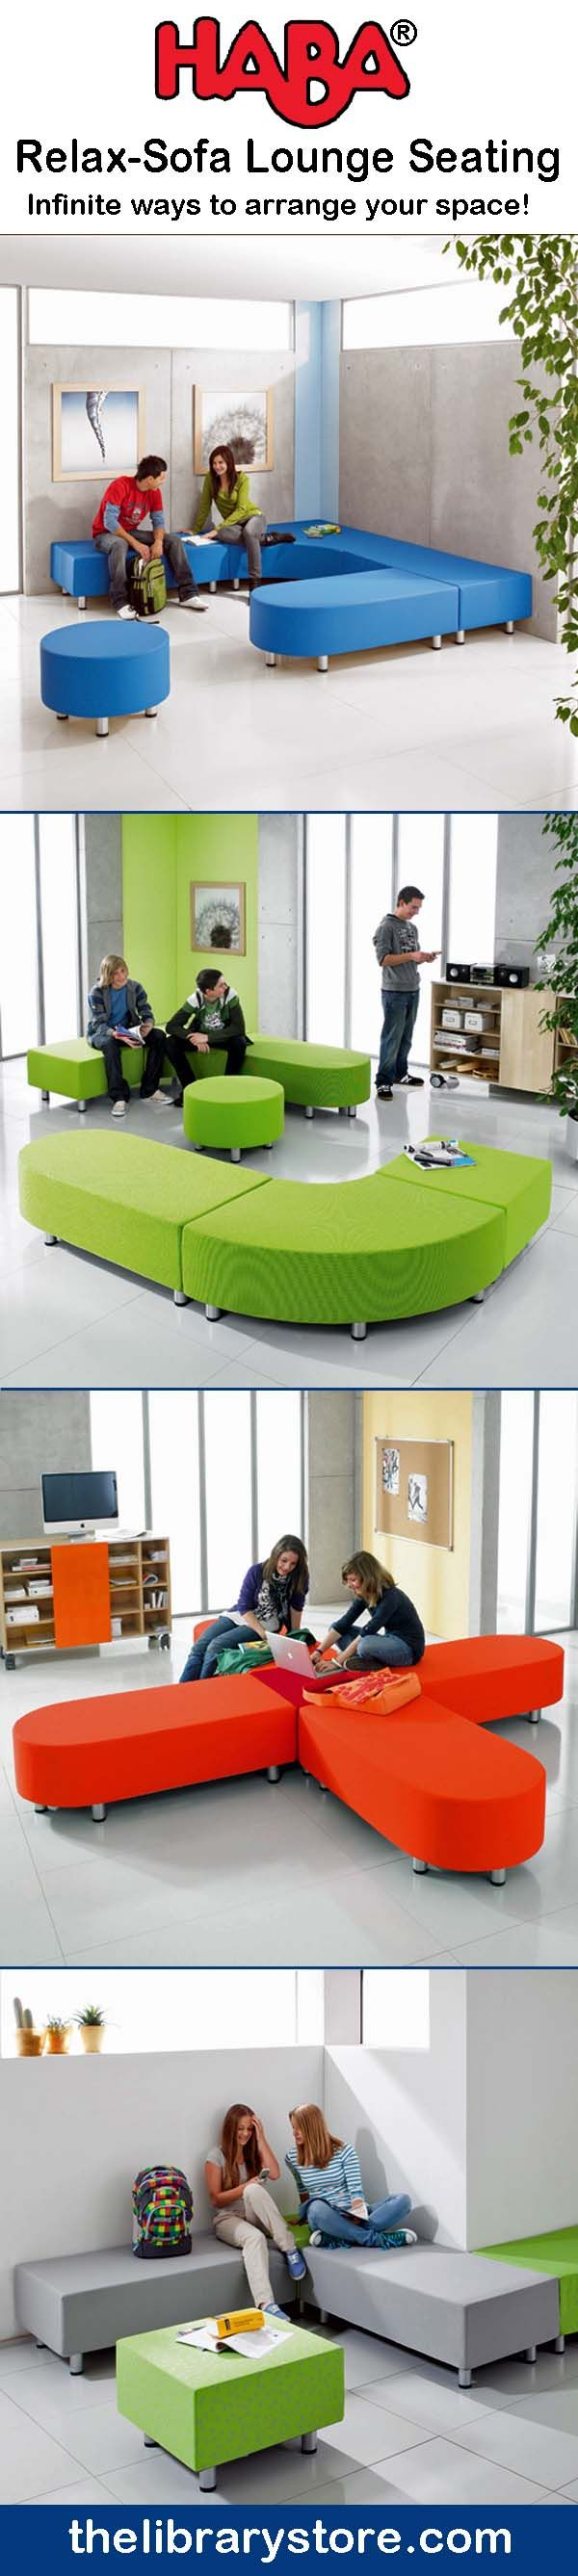 Flexible teen furniture! - HABA Relax - Sofa lounge seating collection.                                                                                                                                                      More